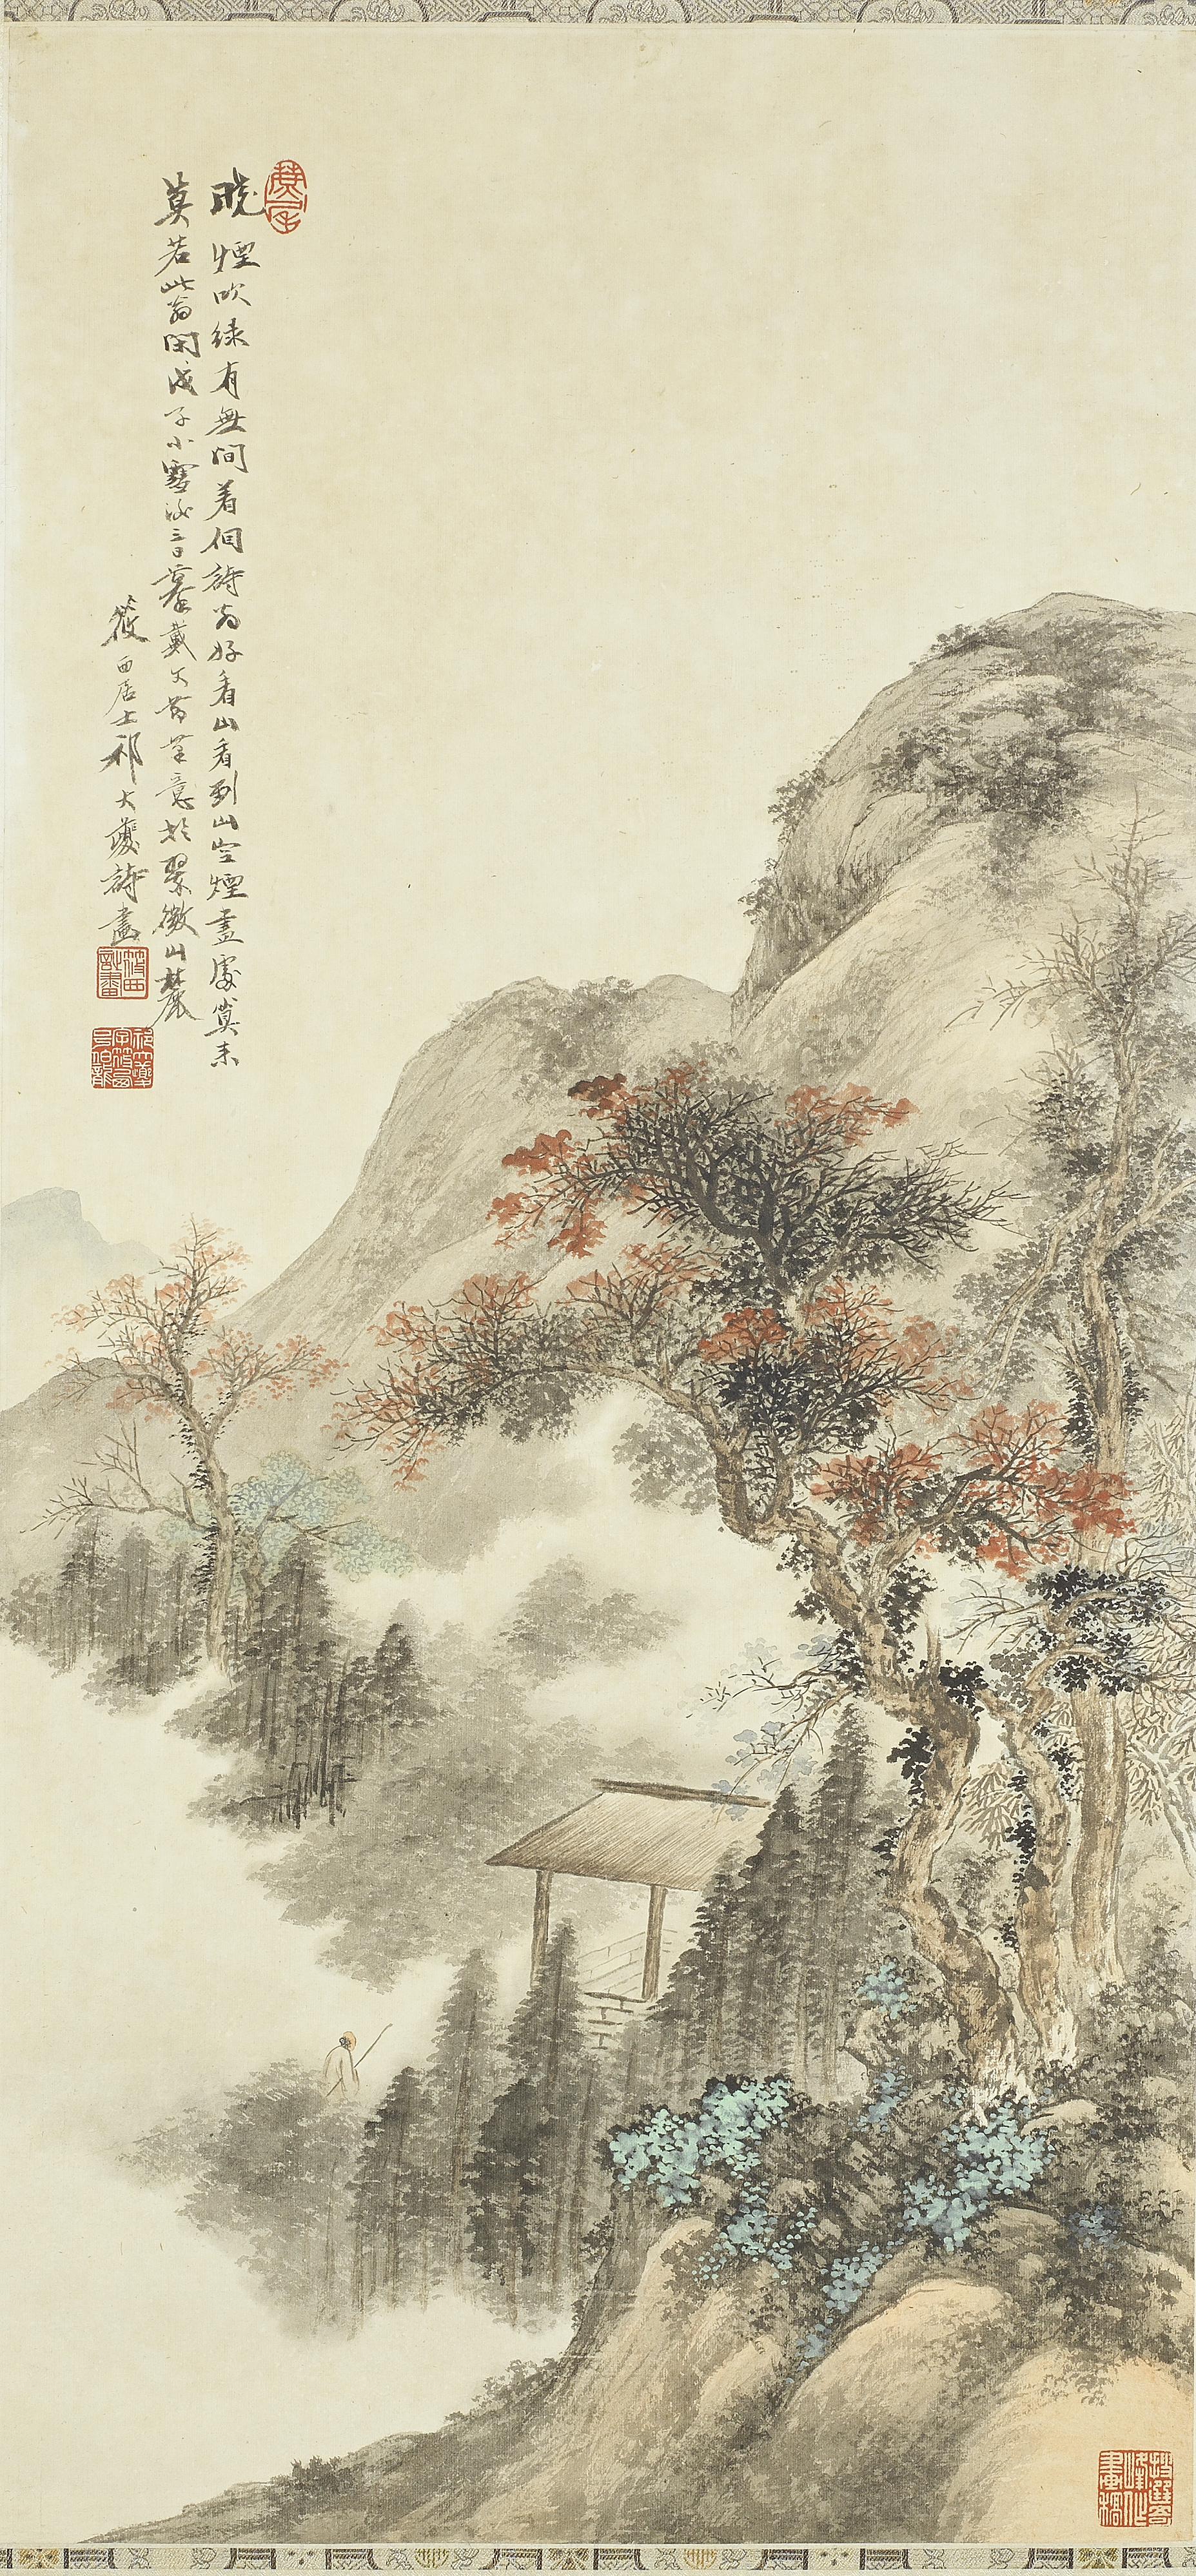 ANONYMOUS (EARLY 20TH CENTURY) 'Mountain landscape'